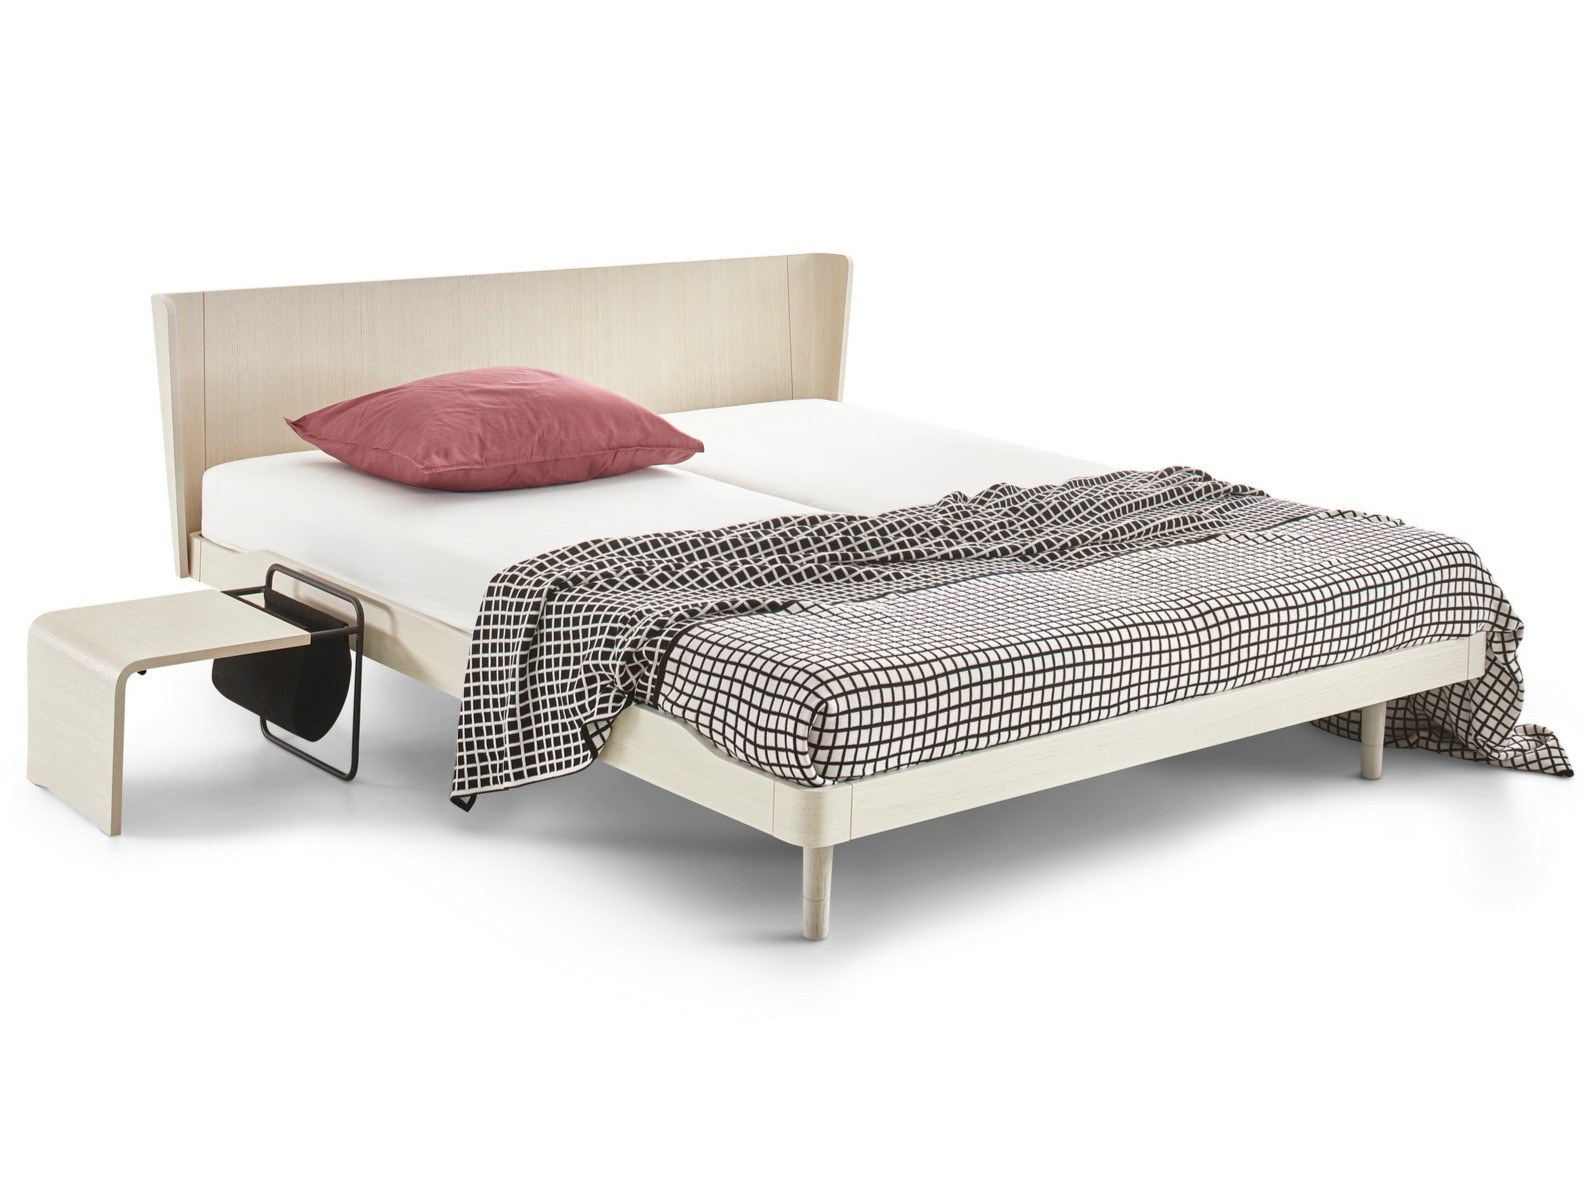 2b NOA Double bed Auping 472314 relf59c751e i Vigna